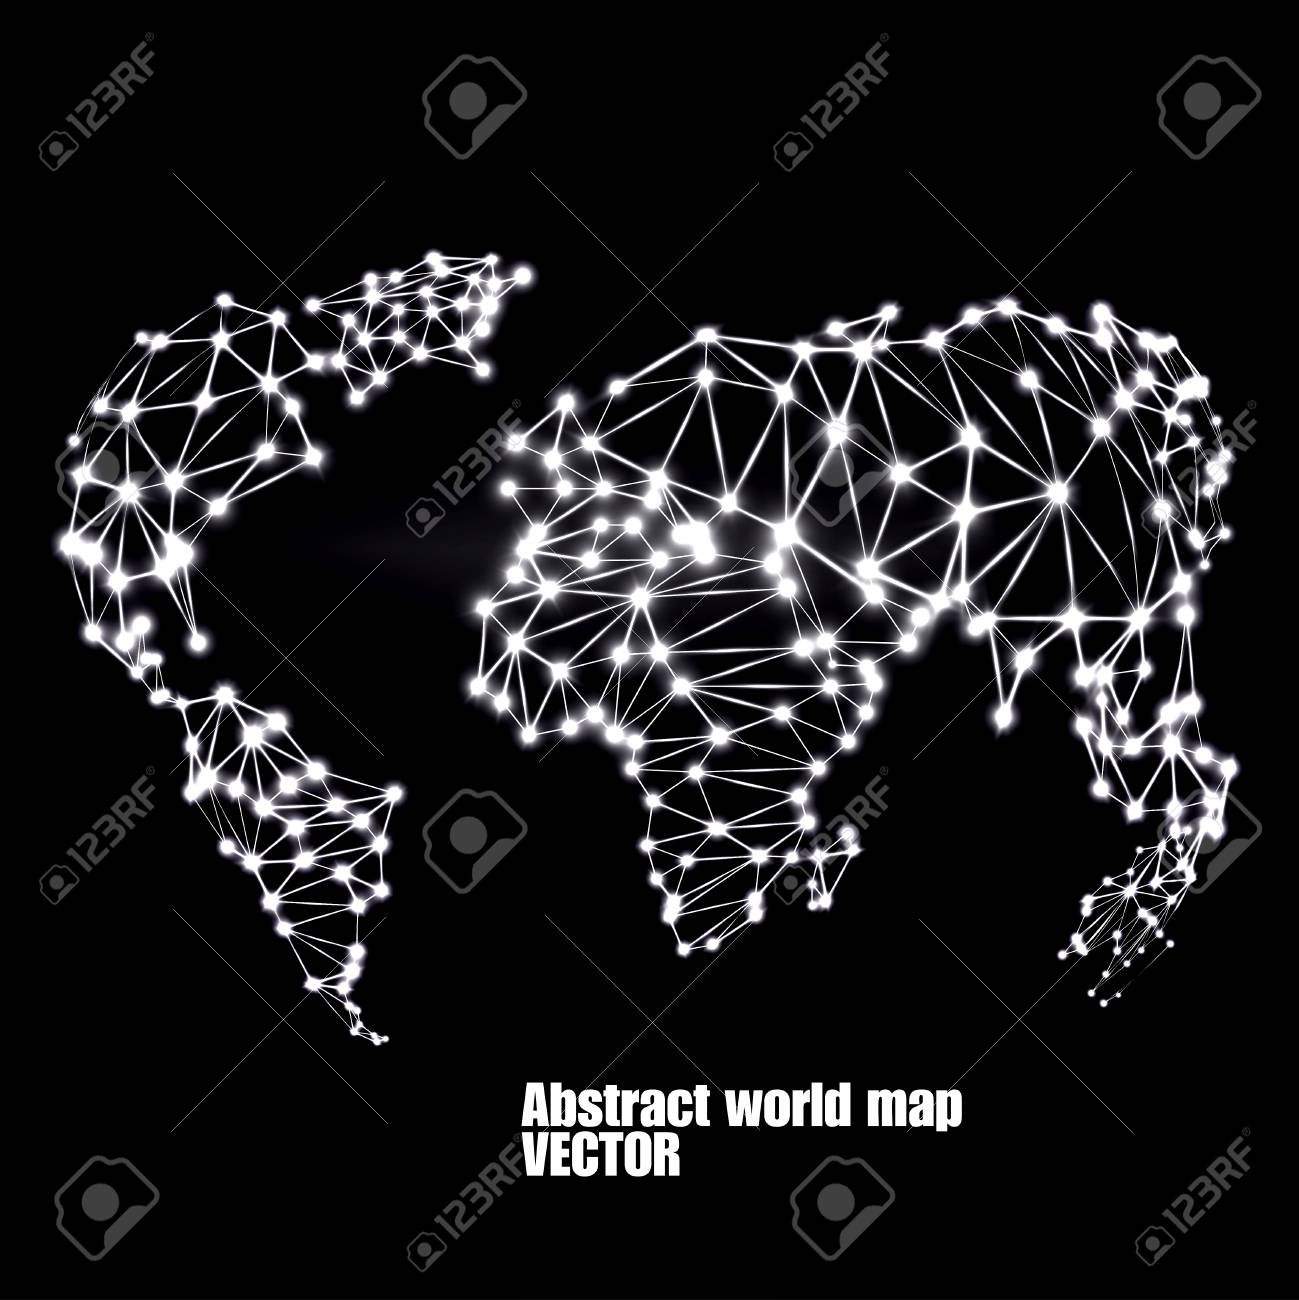 Abstract polygonal world map with glowing dots and lines network abstract polygonal world map with glowing dots and lines network connections vector illustration gumiabroncs Images